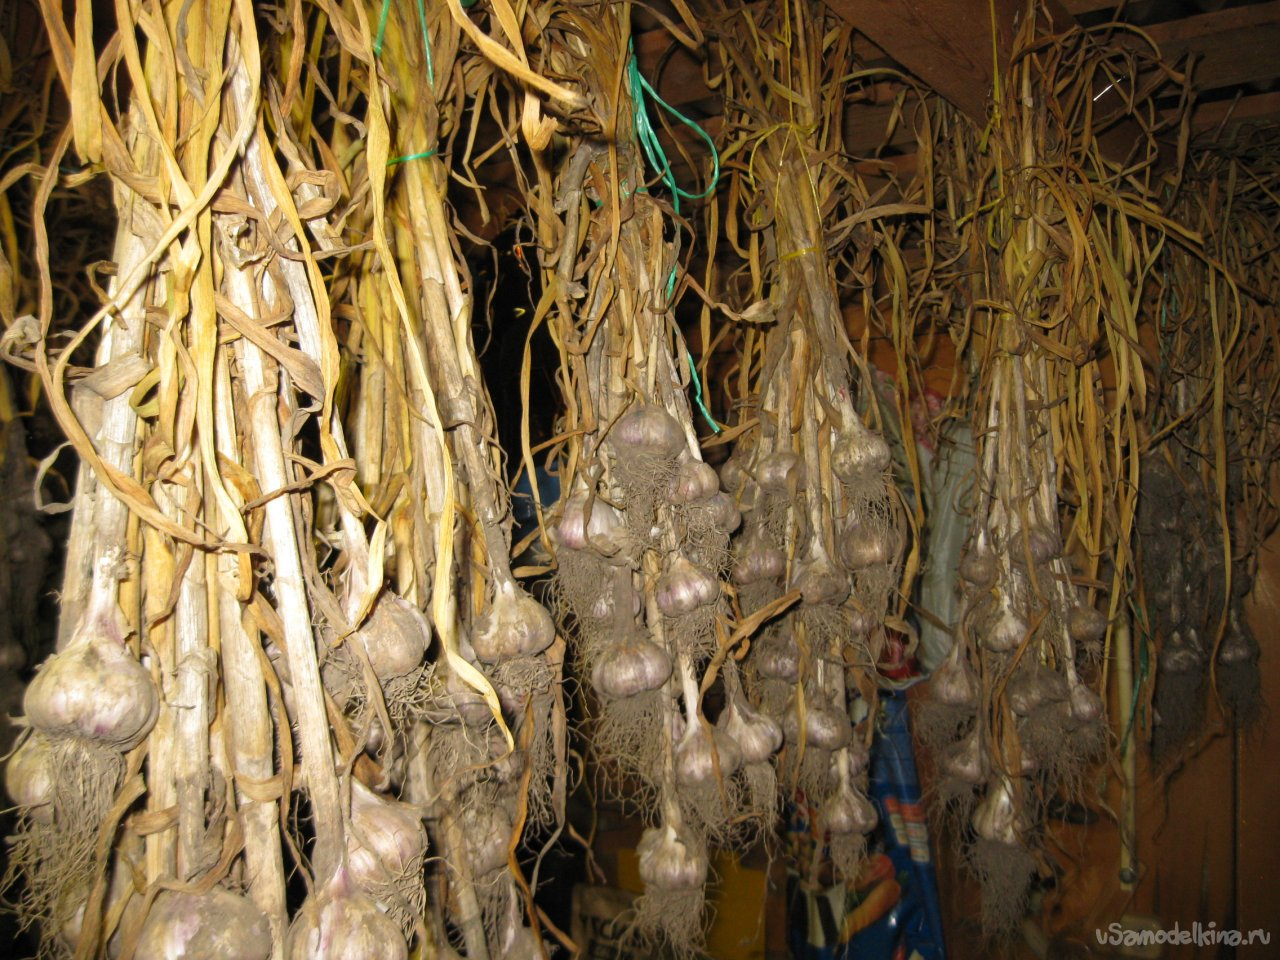 How to prepare garlic for safe and long-term storage